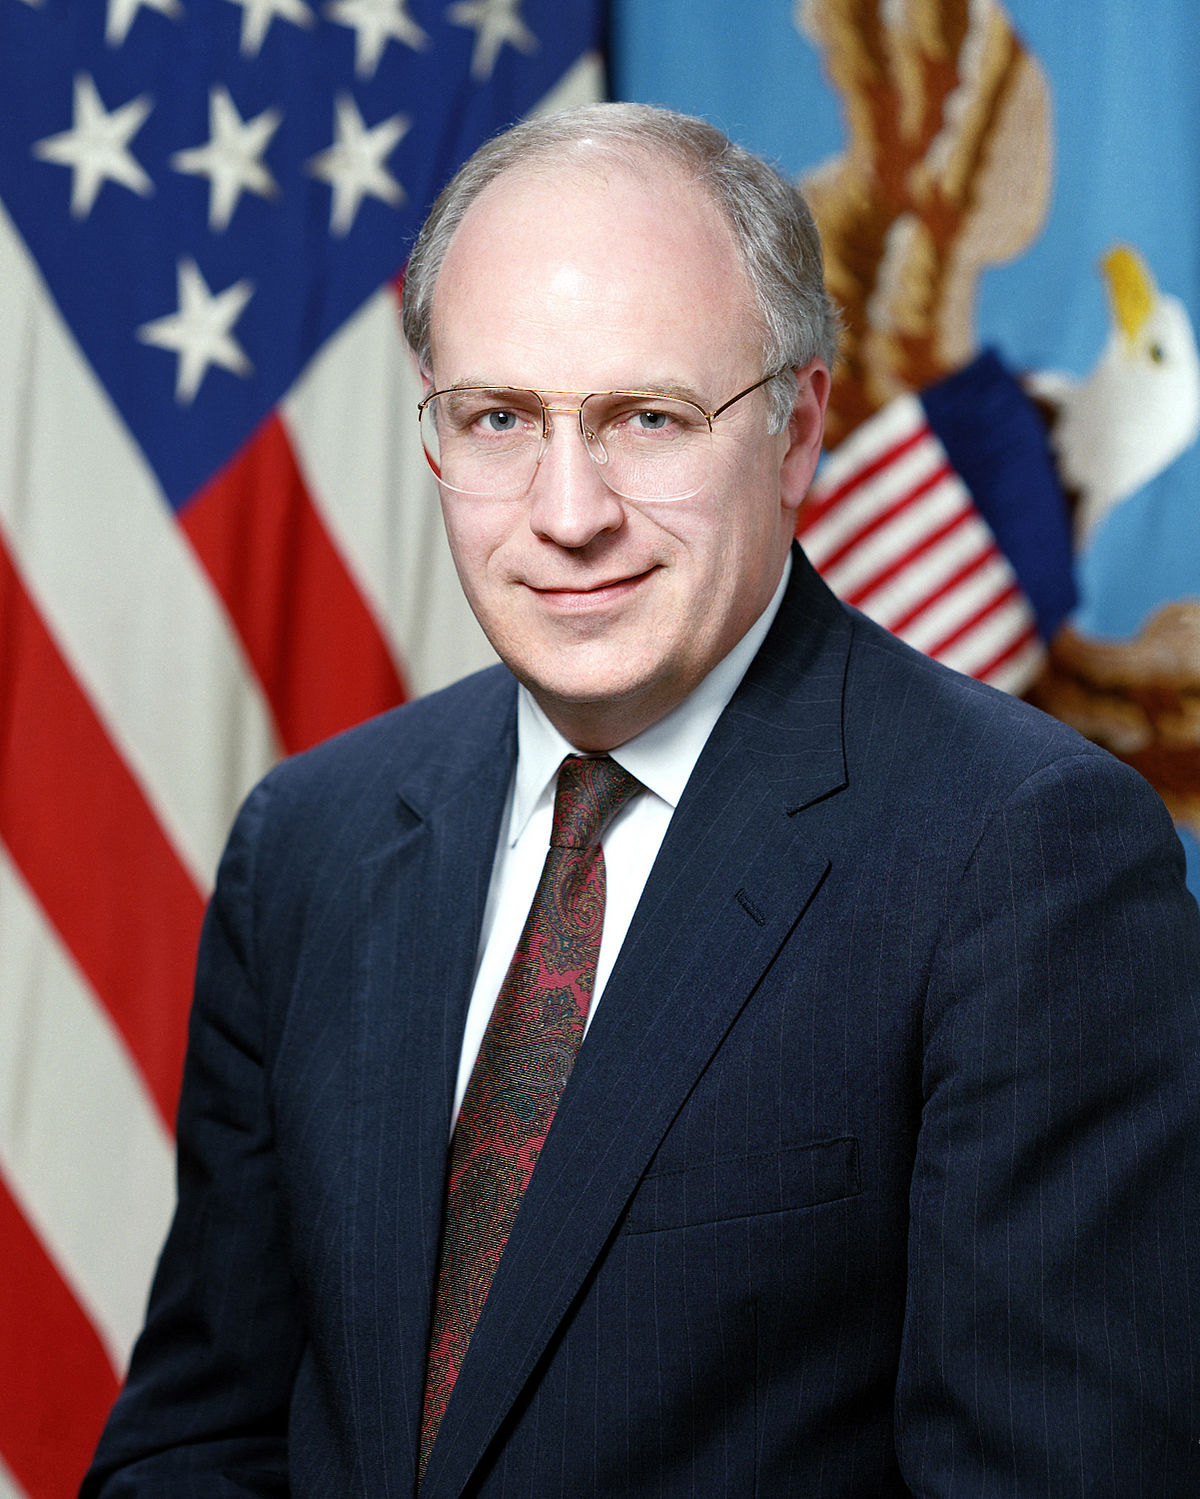 For the dick cheney image